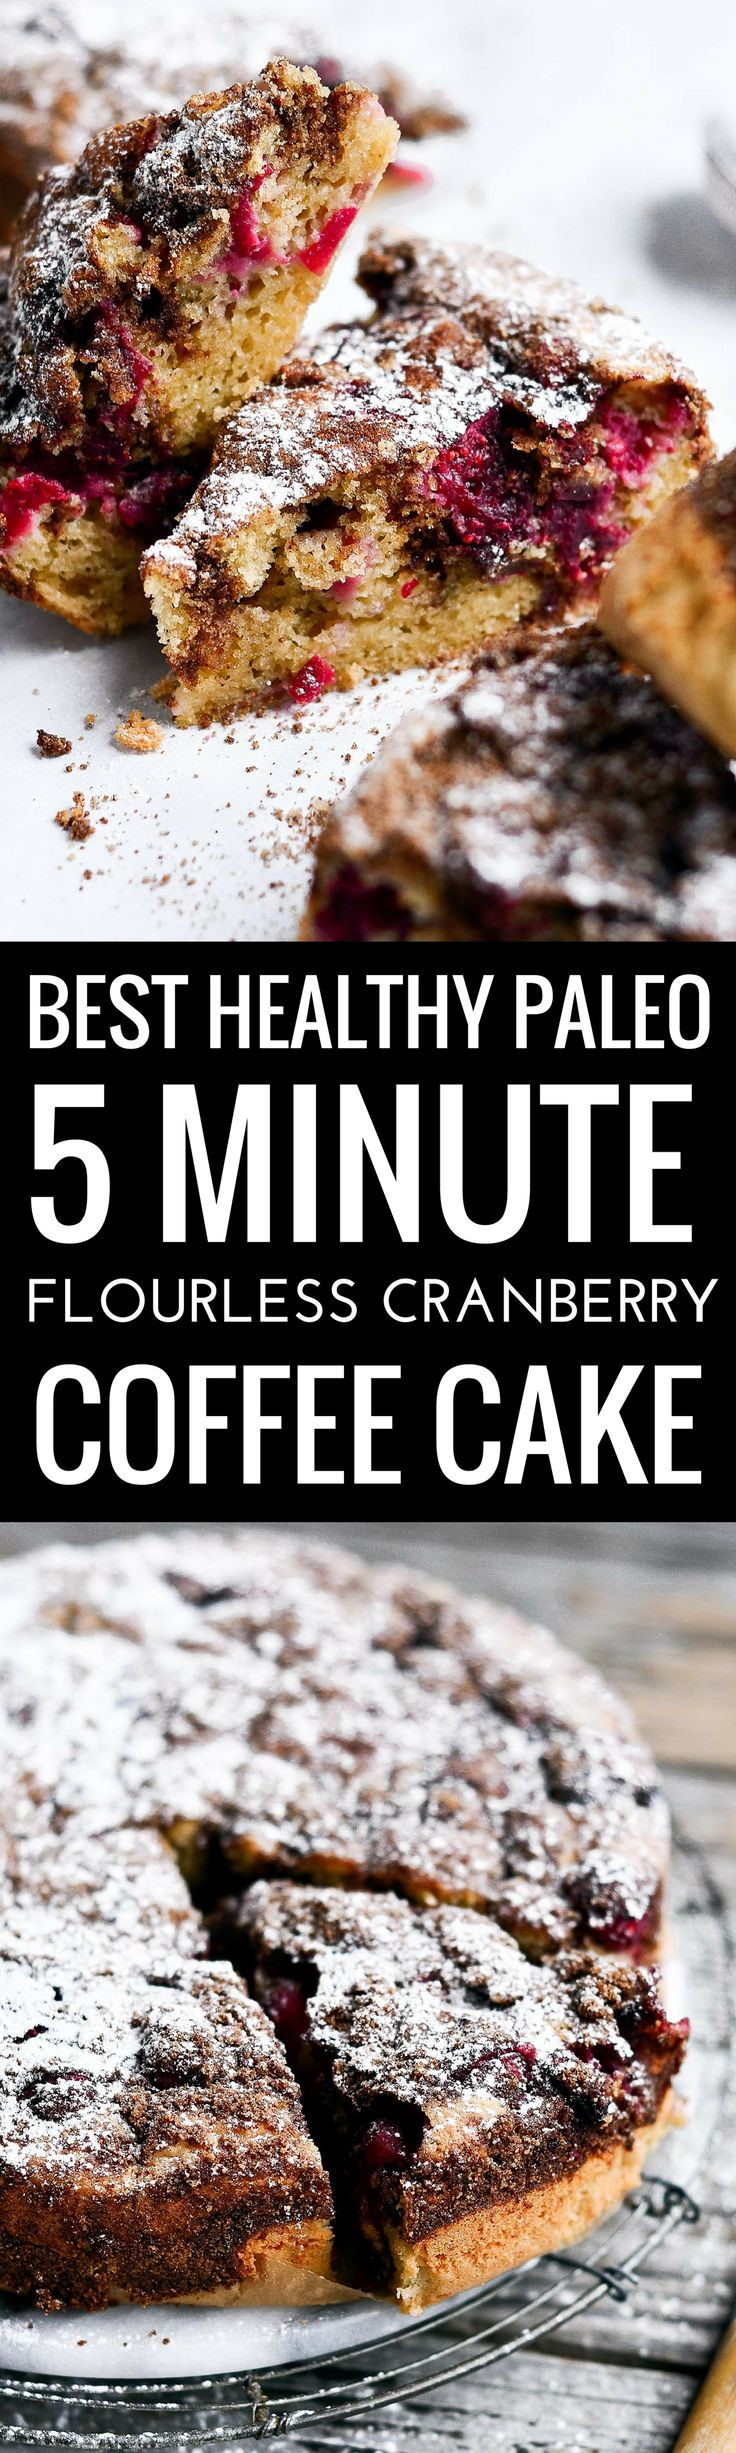 Best Healthy Paleo 5 Minute Flourless Cranberry Coffee Cake